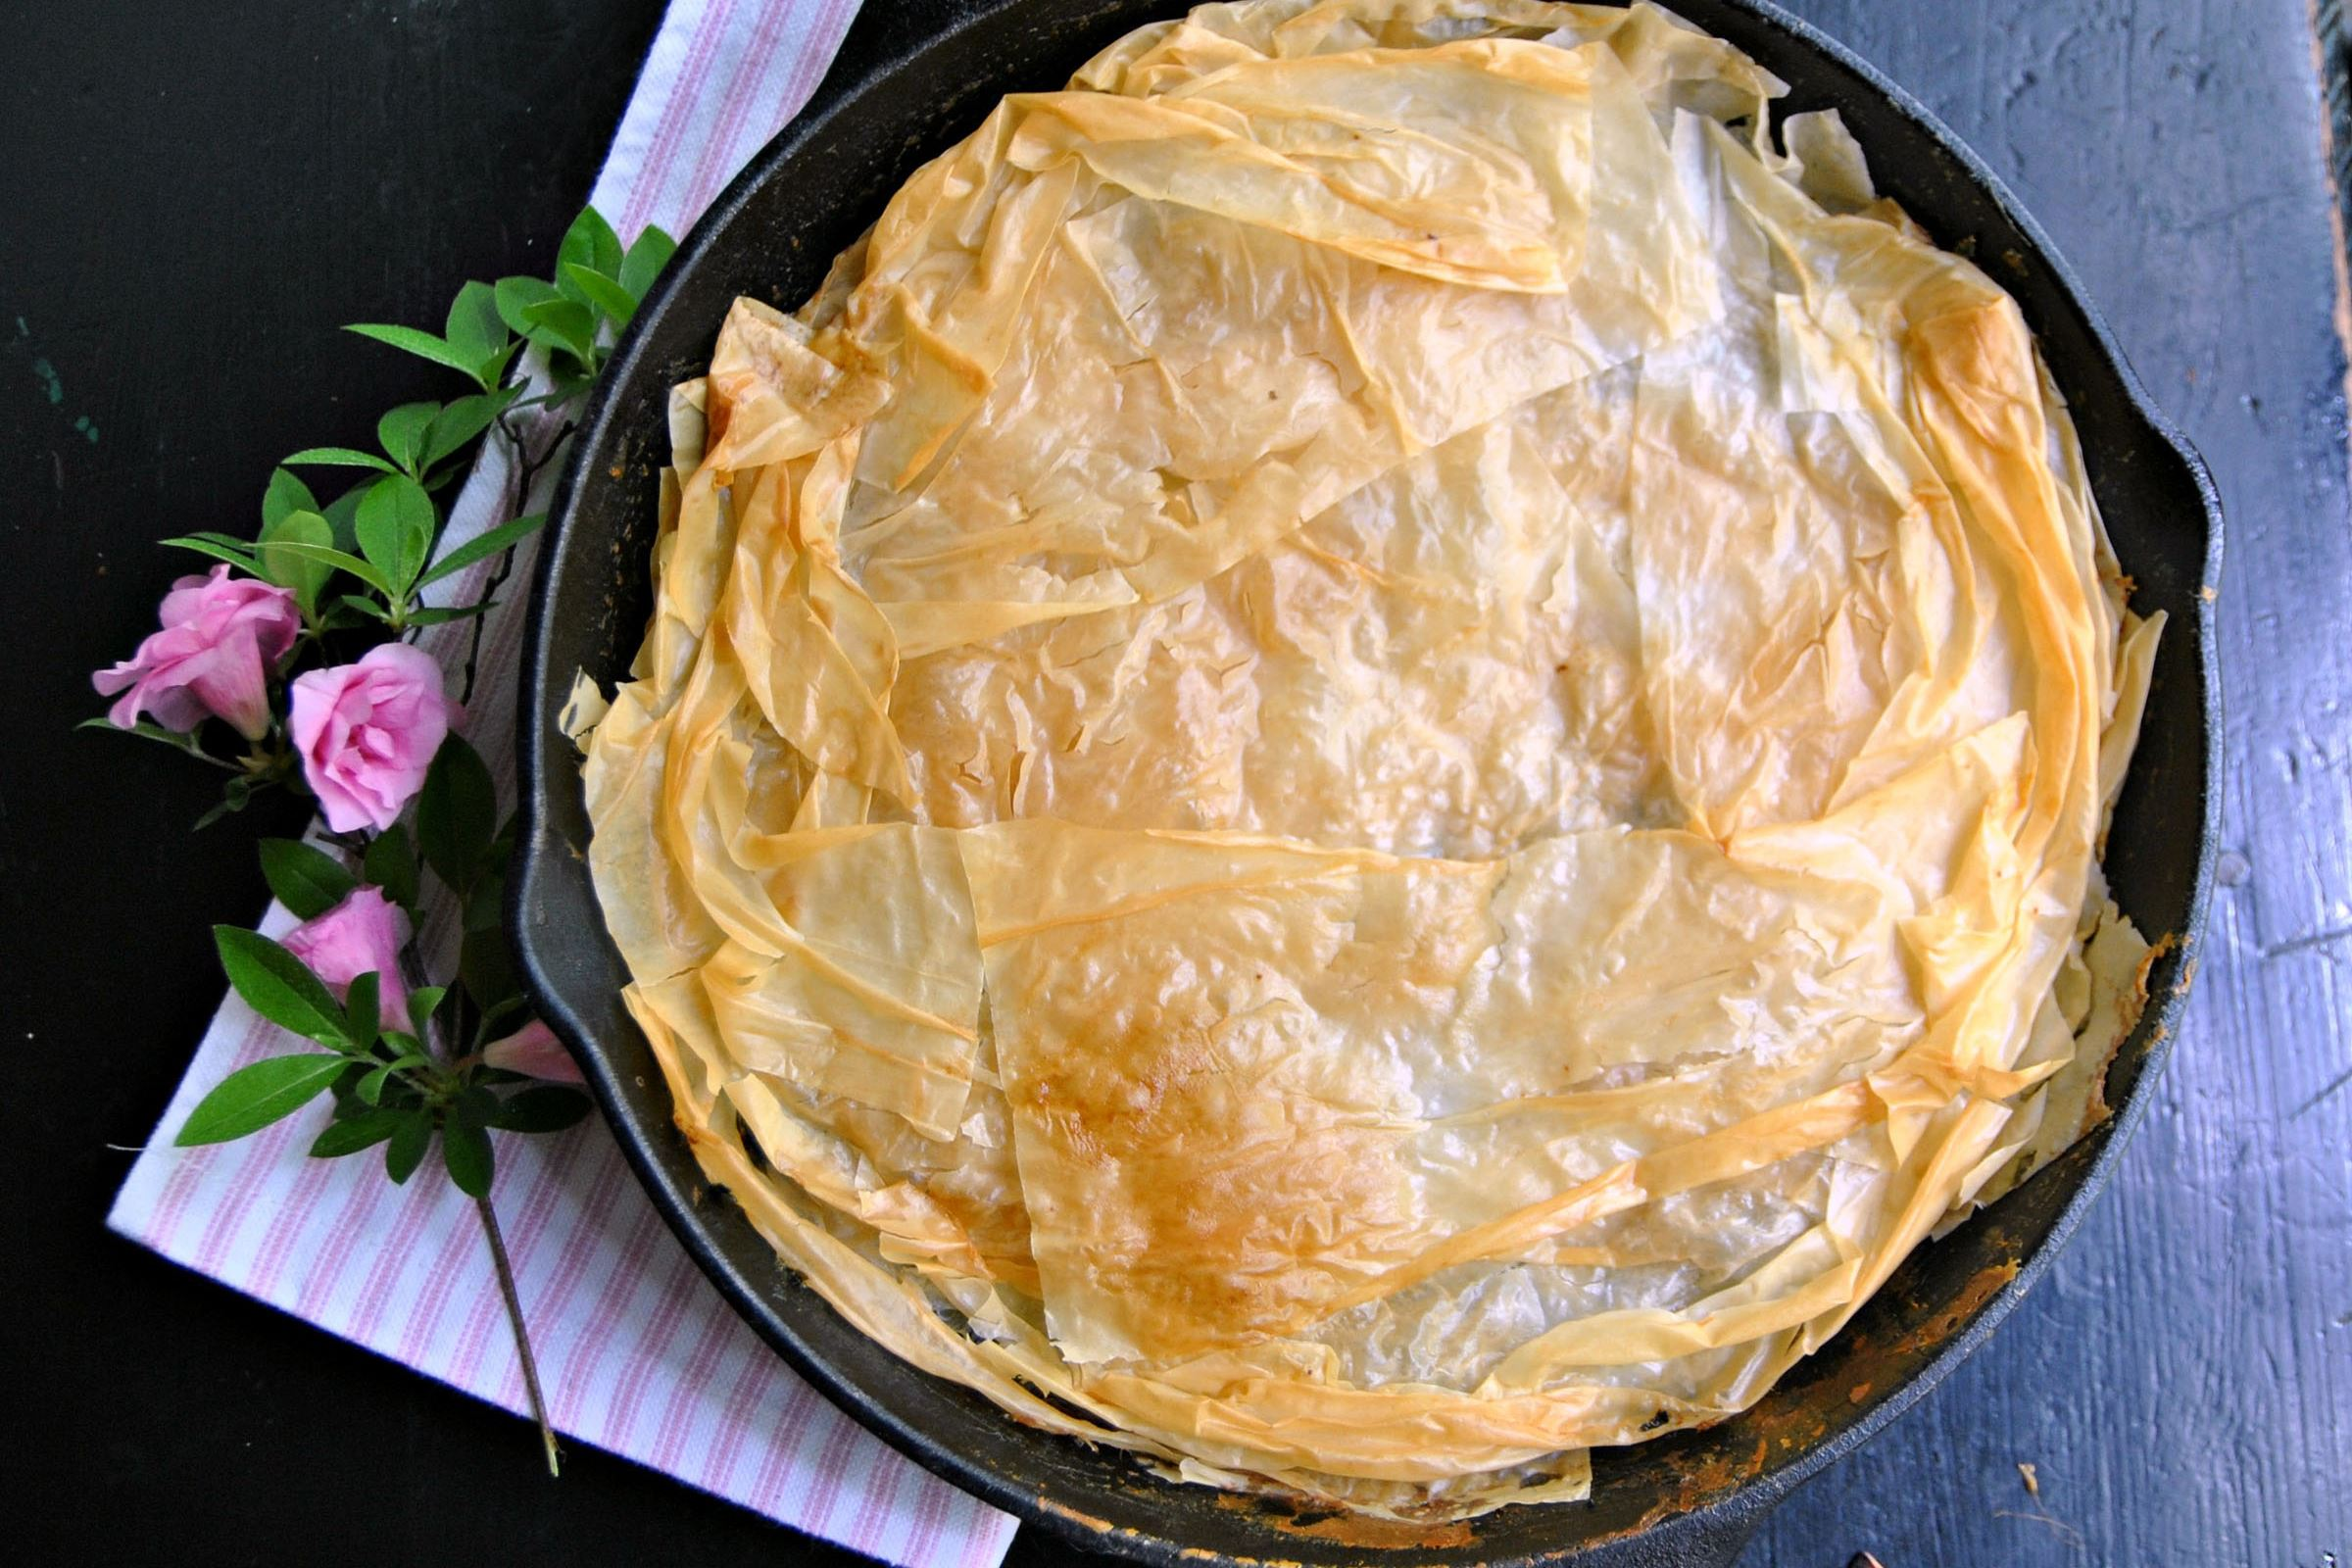 spinach-pie-5-6 Skillet Spinach Pie can be made ahead of time and served at room temperature.